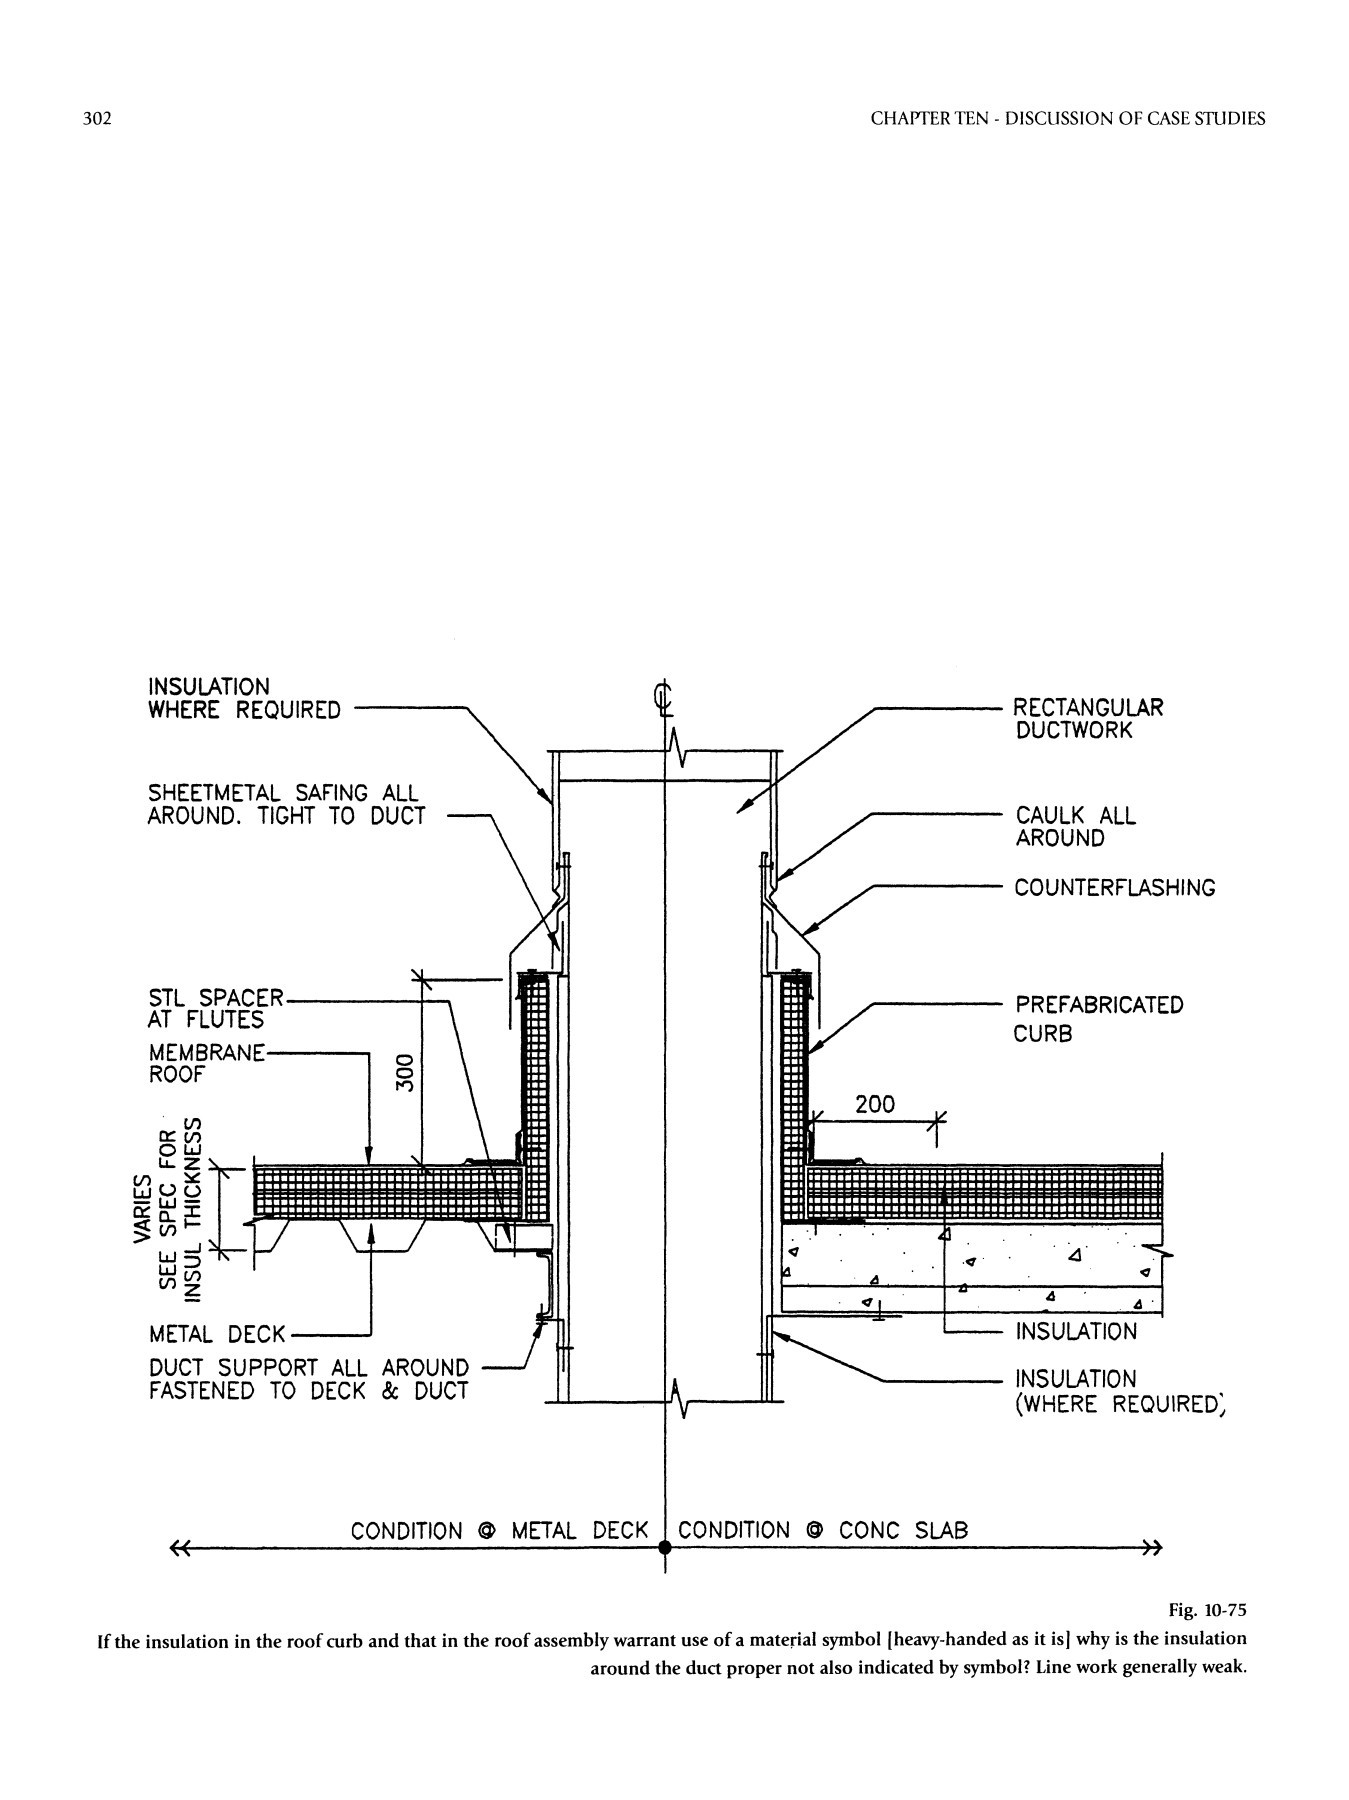 Handbook Of Detailing The Graphic Anatomy Of Construction Flip Book Pages 301 350 Pubhtml5